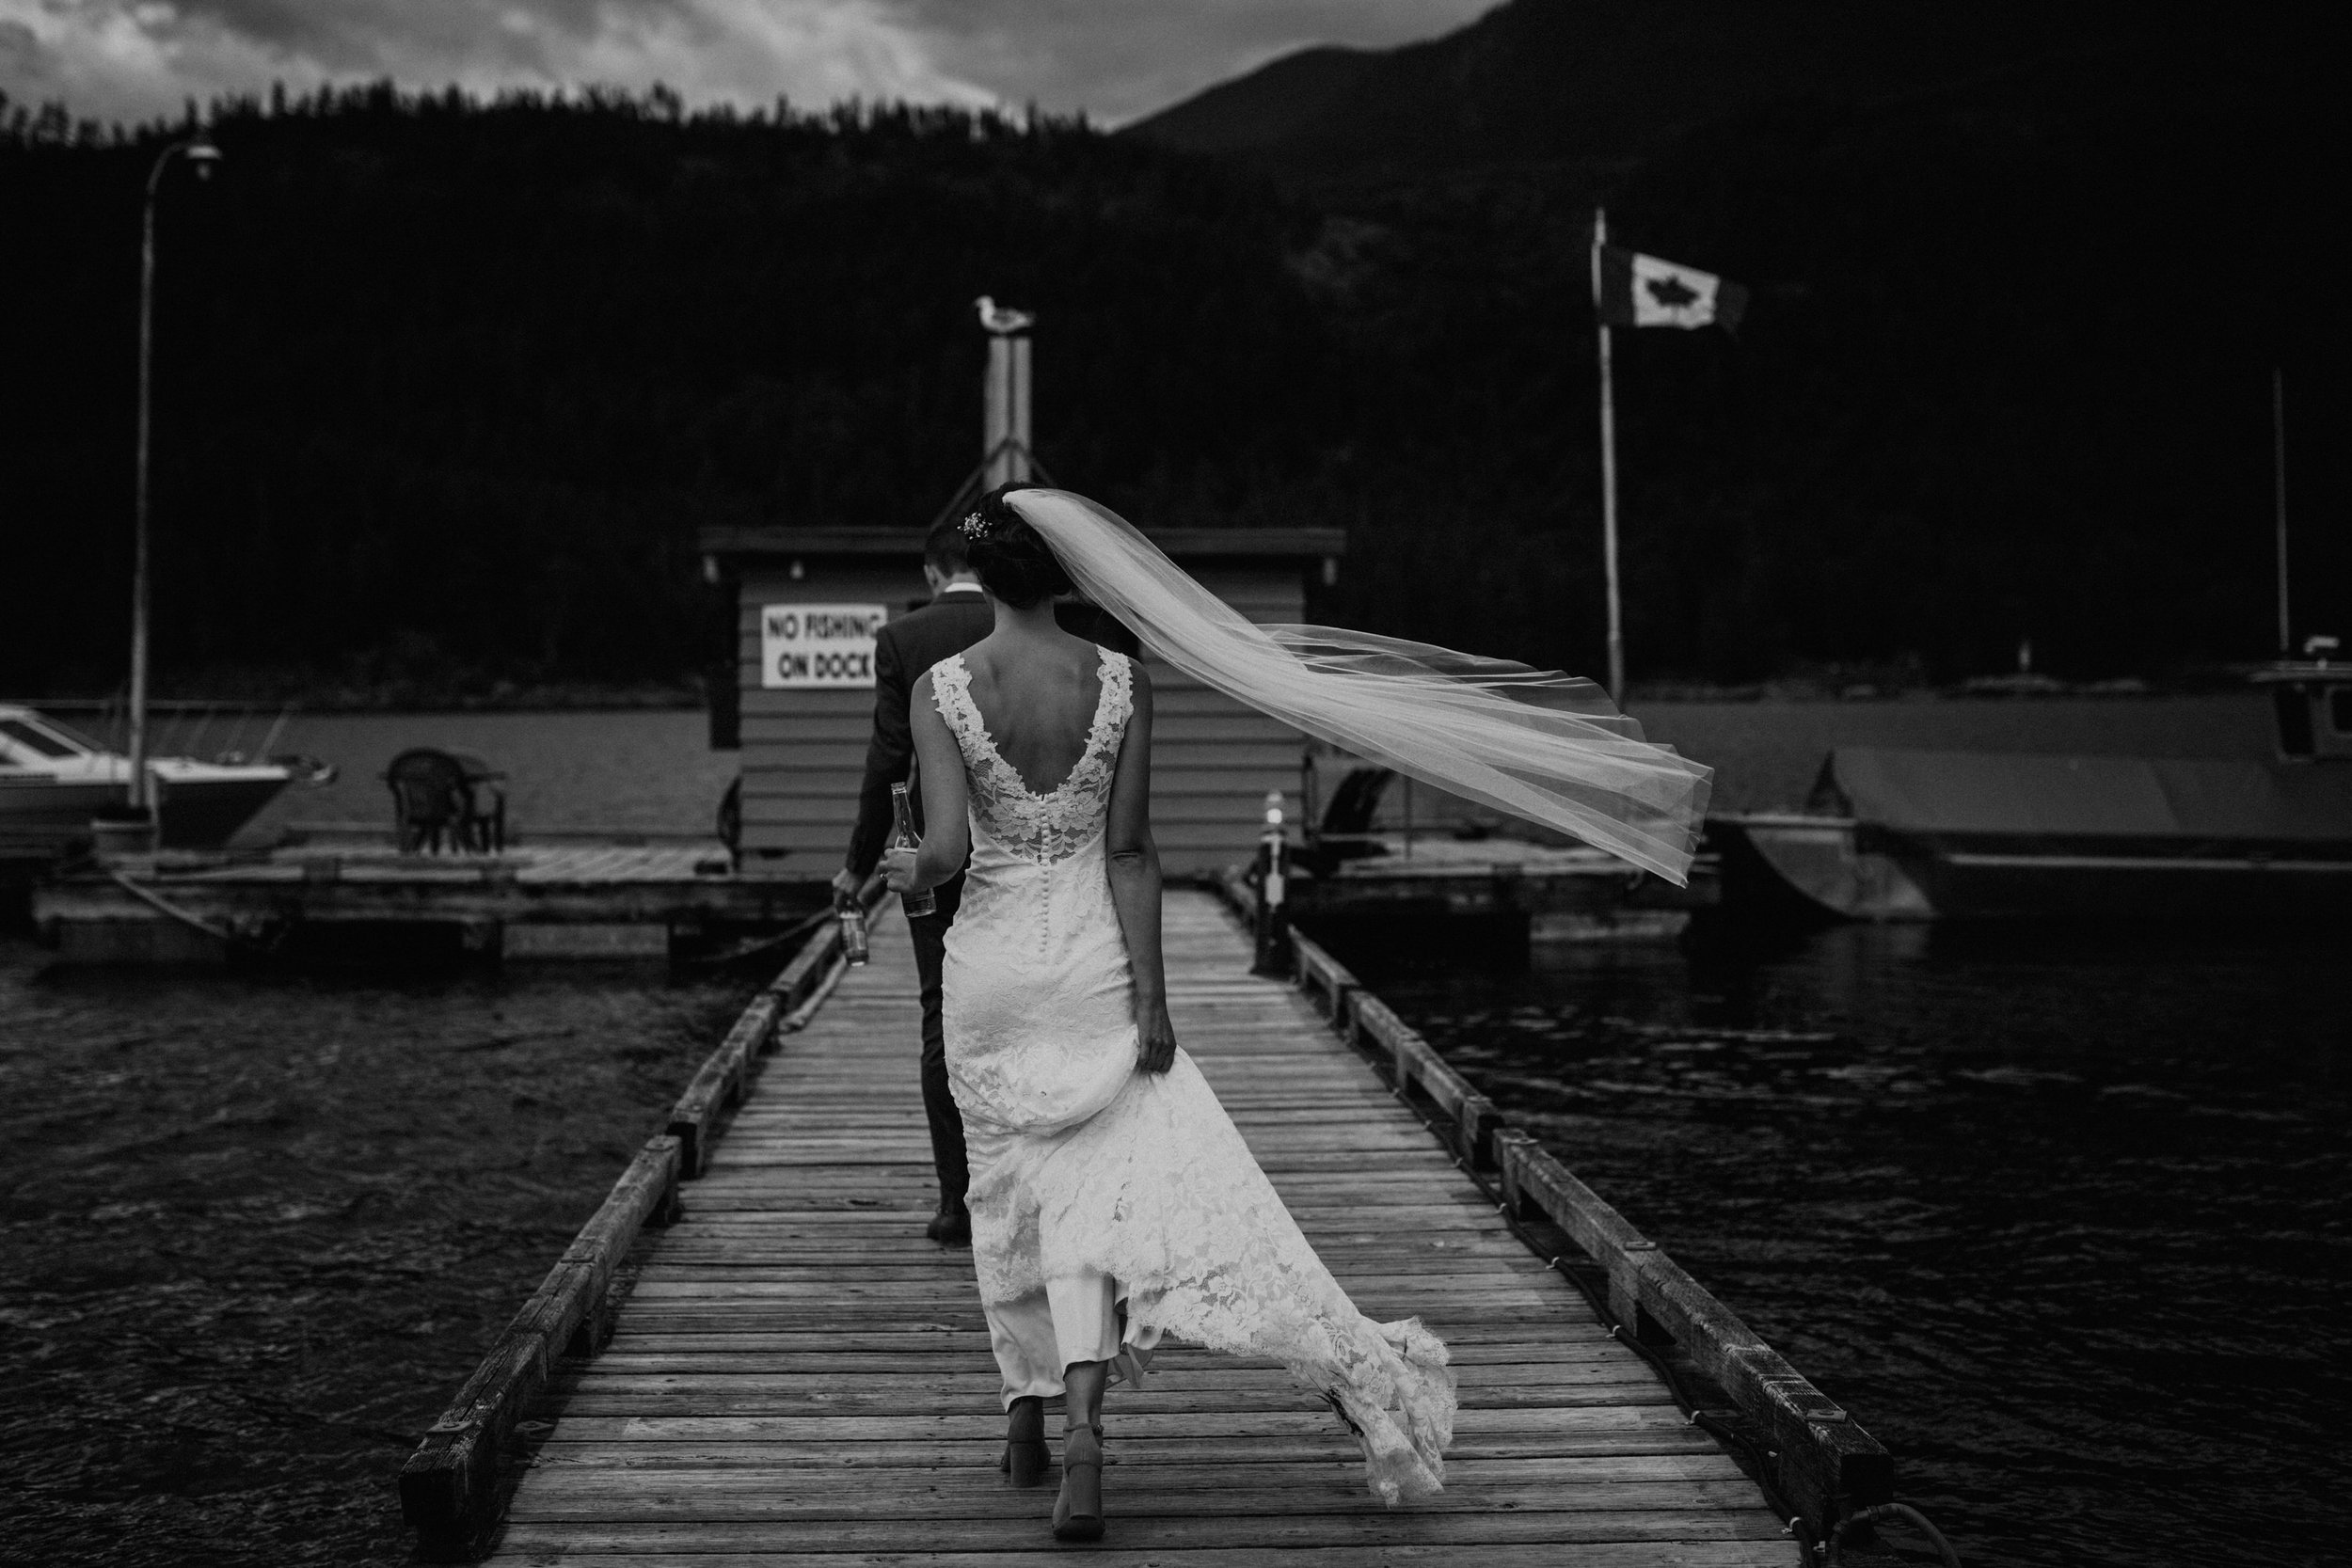 West Coast Wilderness Lodge Wedding Photos - Vancouver Wedding Photographer & Videographer - Sunshine Coast Wedding Photos - Sunshine Coast Wedding Photographer - Jennifer Picard Photography -